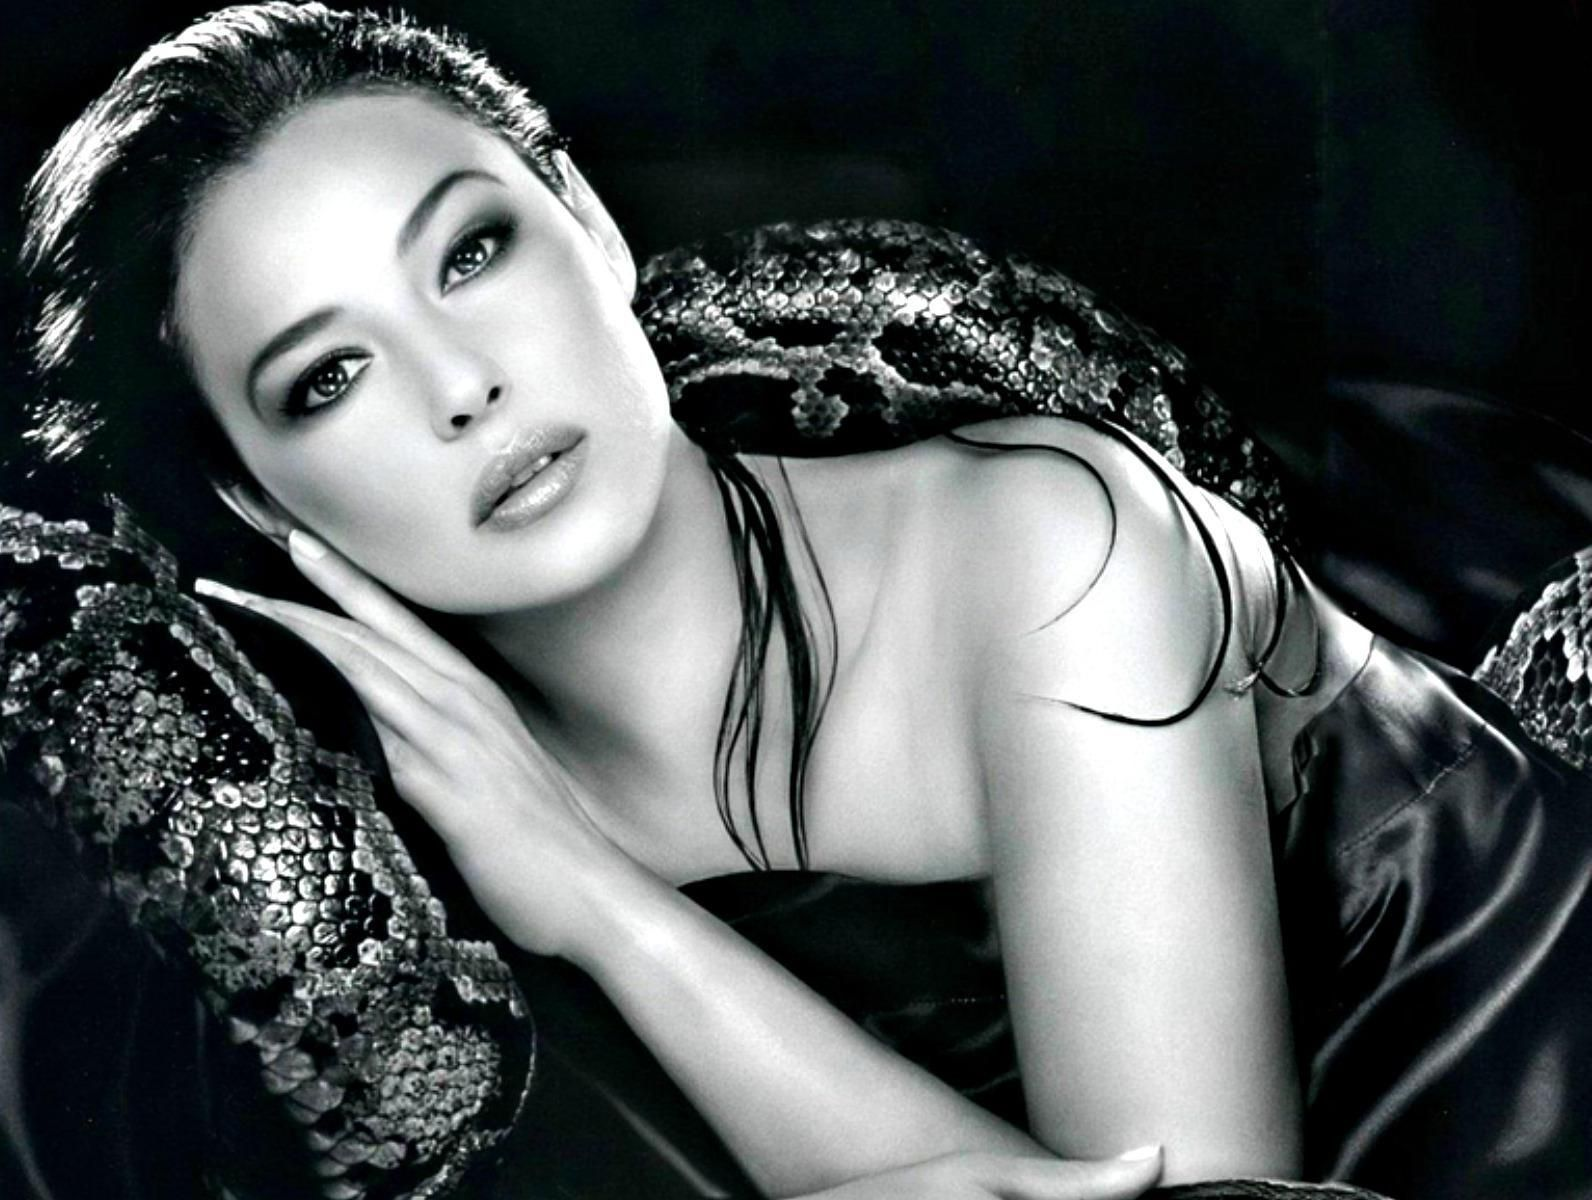 60 sexy monica bellucci hd wallpaper monica bellucci and hd 60 sexy monica bellucci hd wallpaper voltagebd